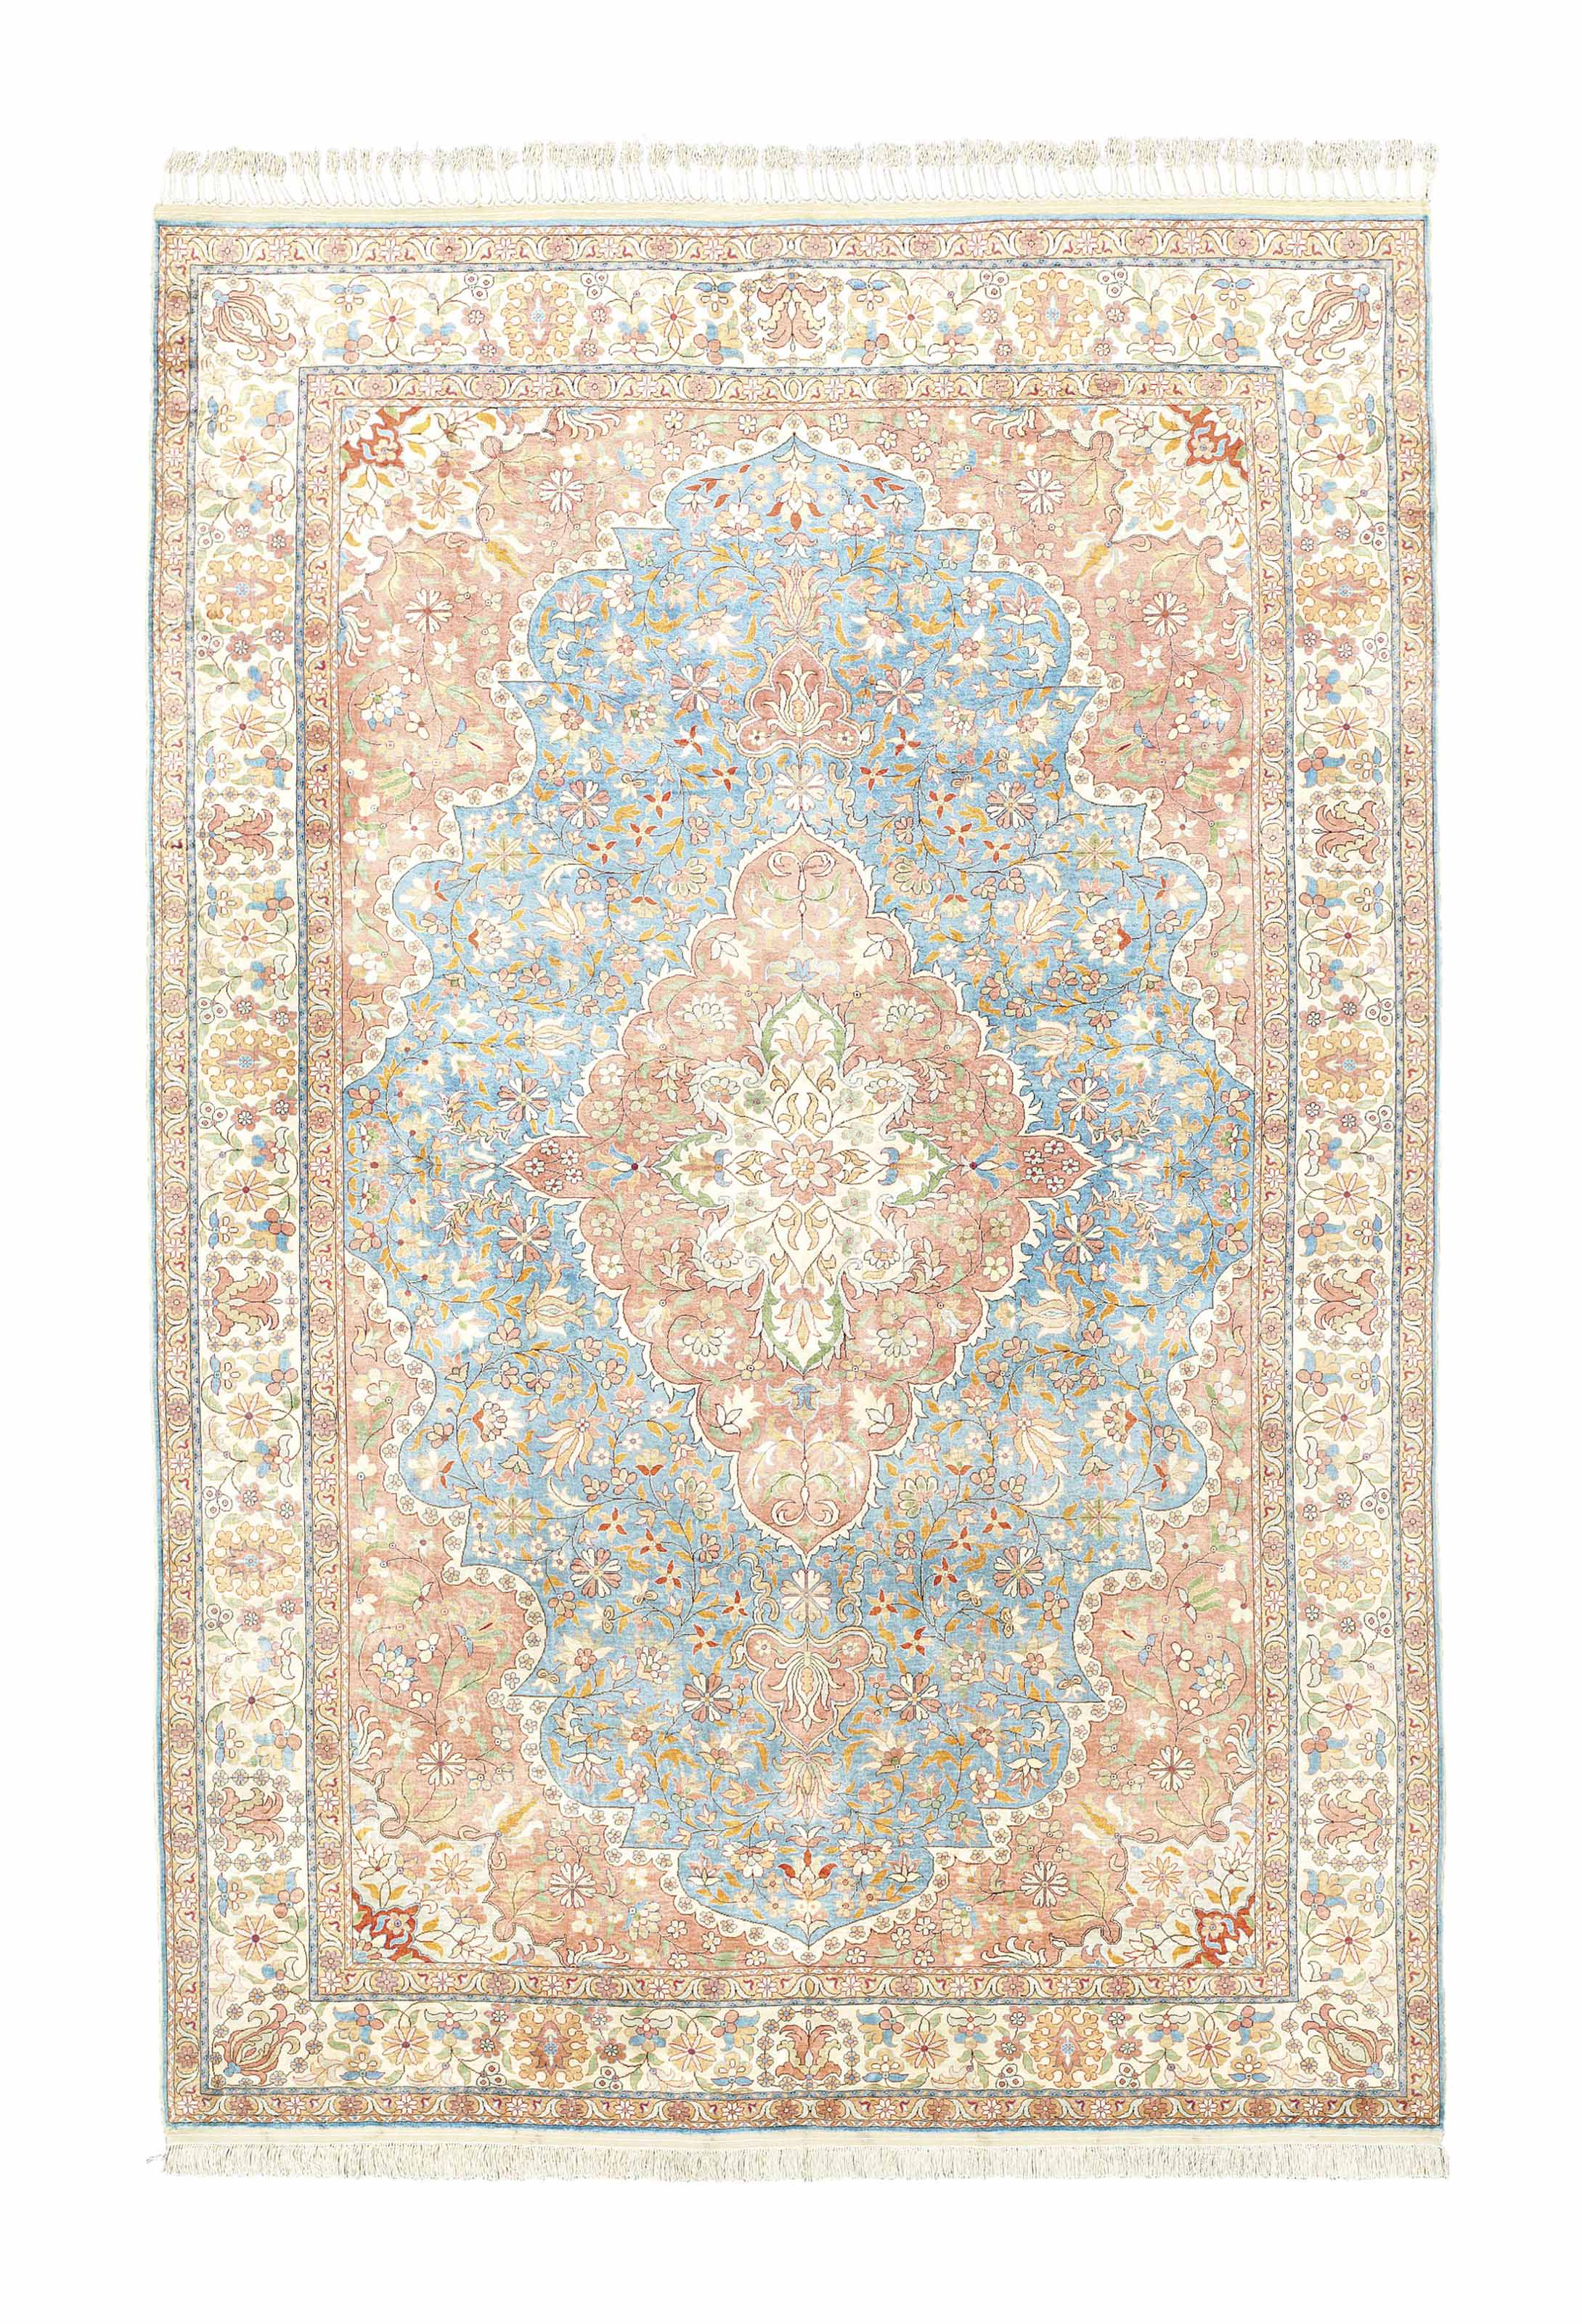 A SILK HEREKE CARPET